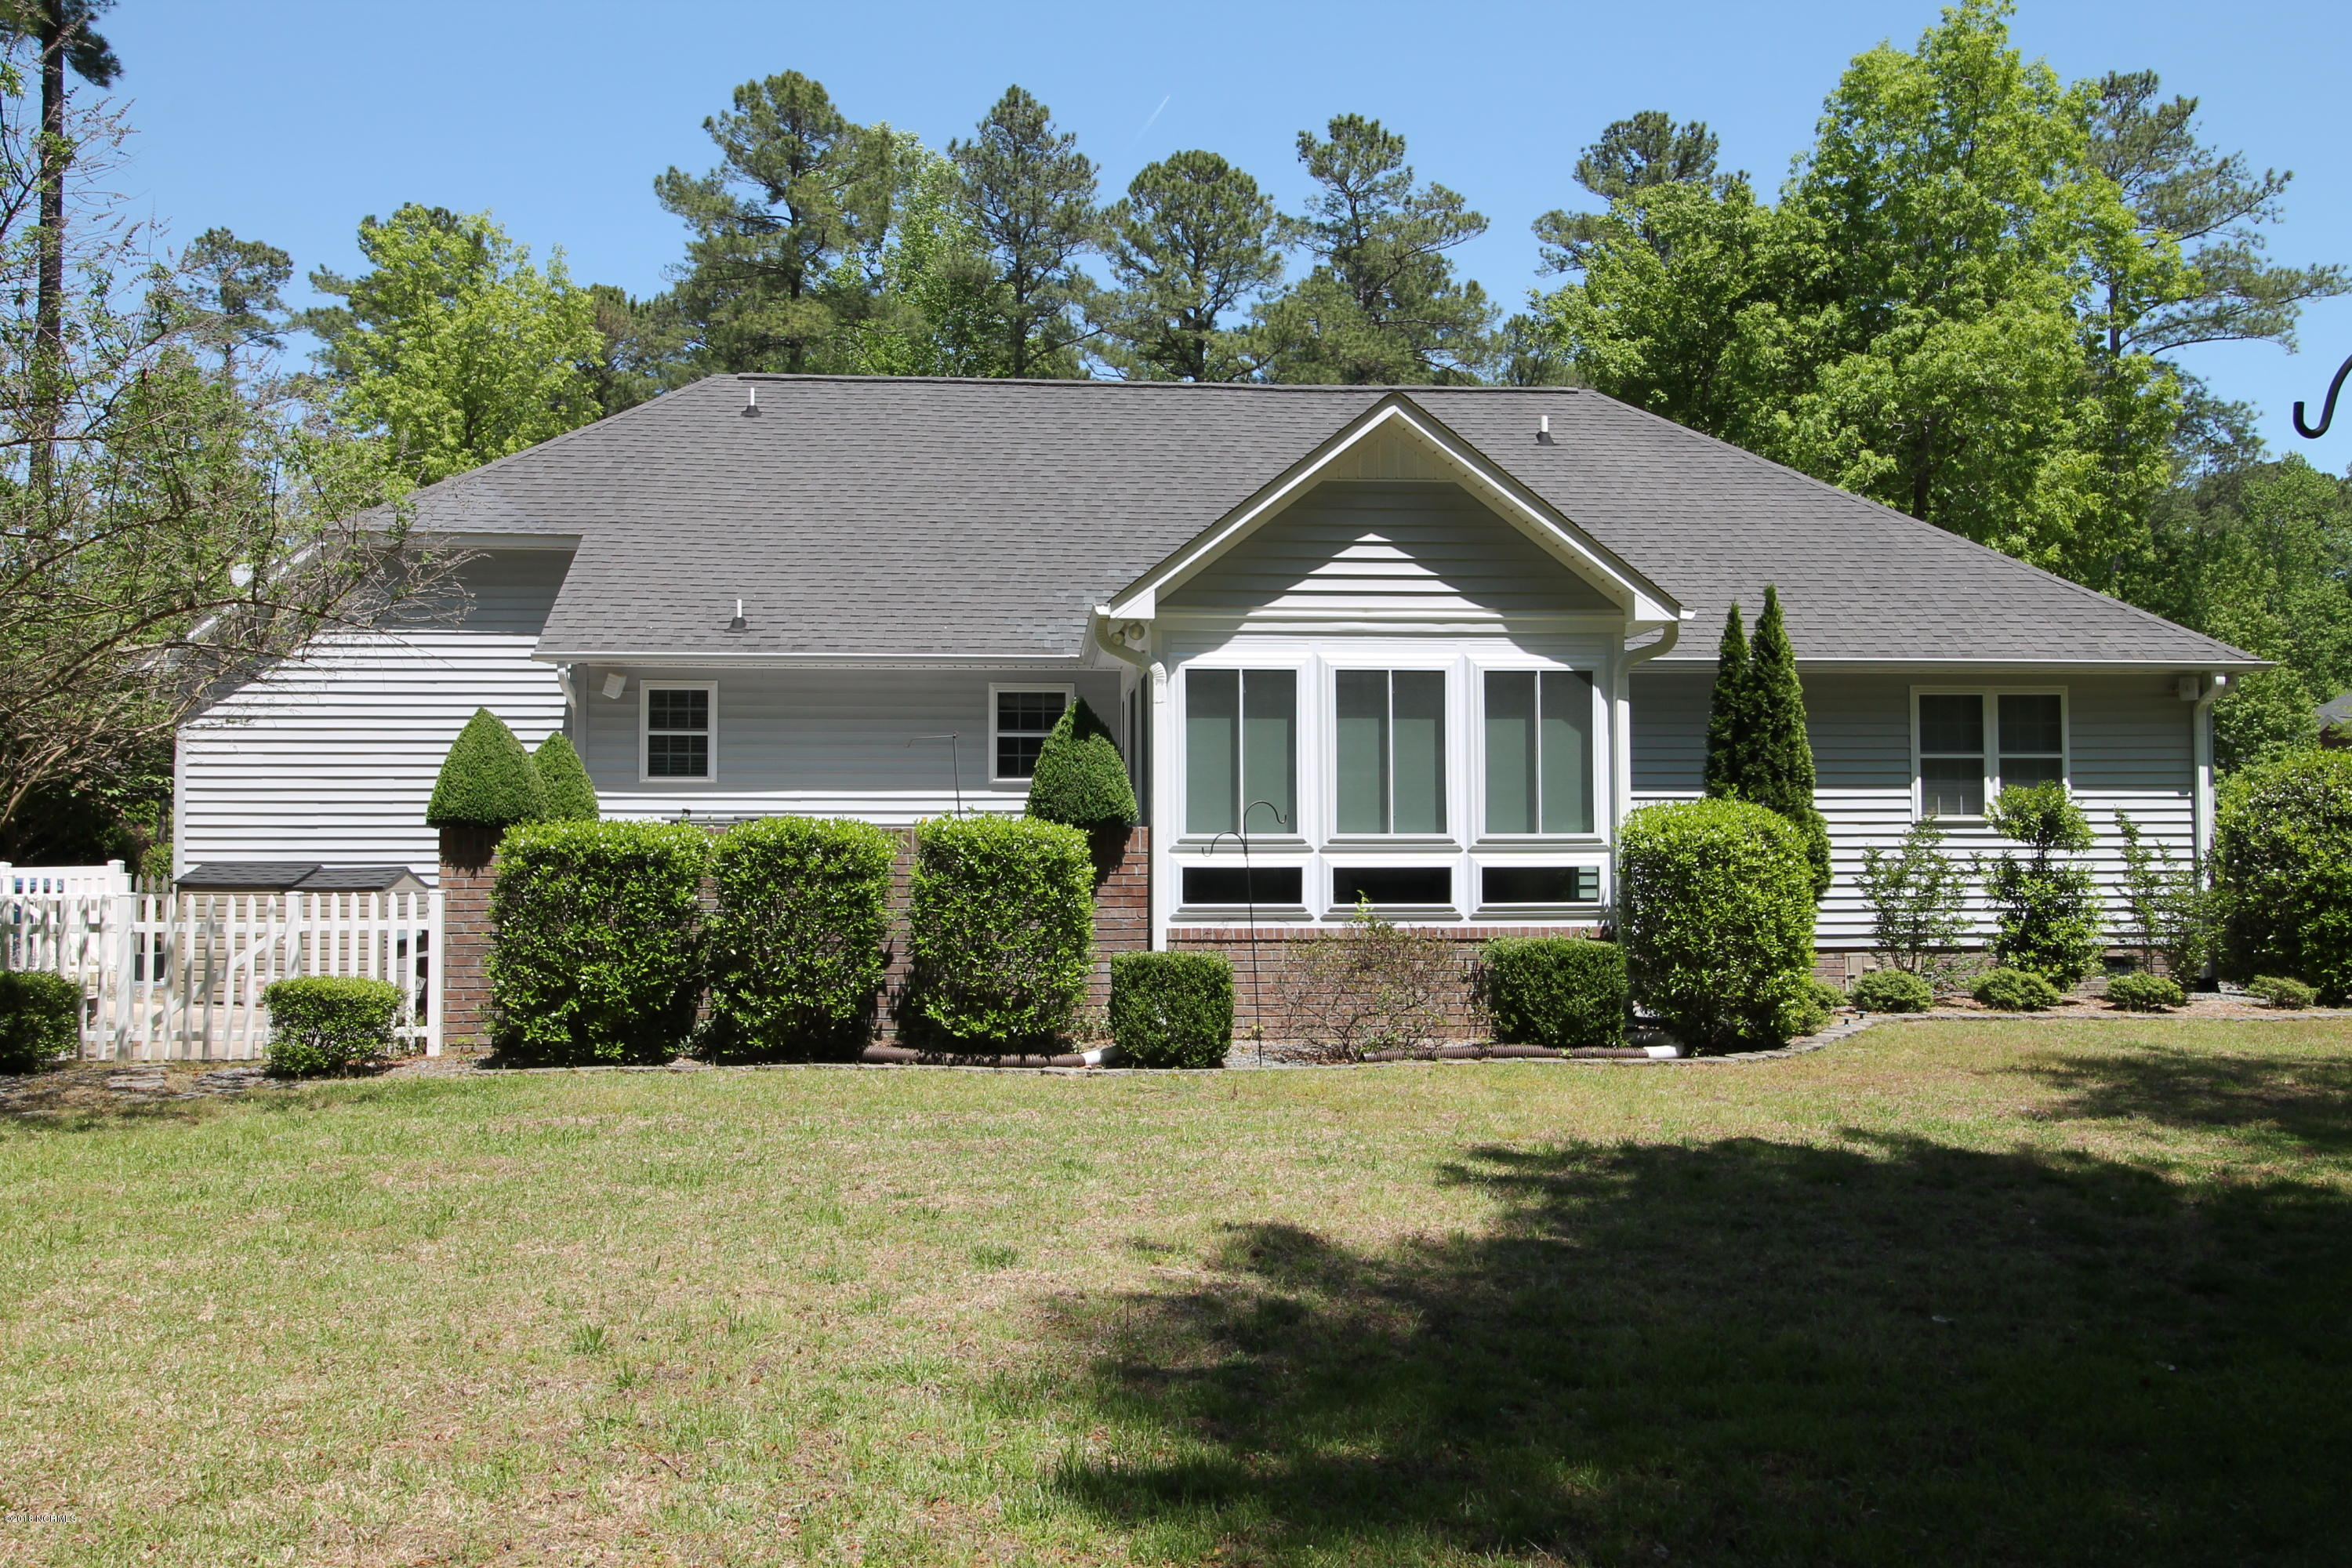 115 Merrimack Place, Chocowinity, North Carolina, 3 Bedrooms Bedrooms, 8 Rooms Rooms,2 BathroomsBathrooms,Single family residence,For sale,Merrimack,100115597